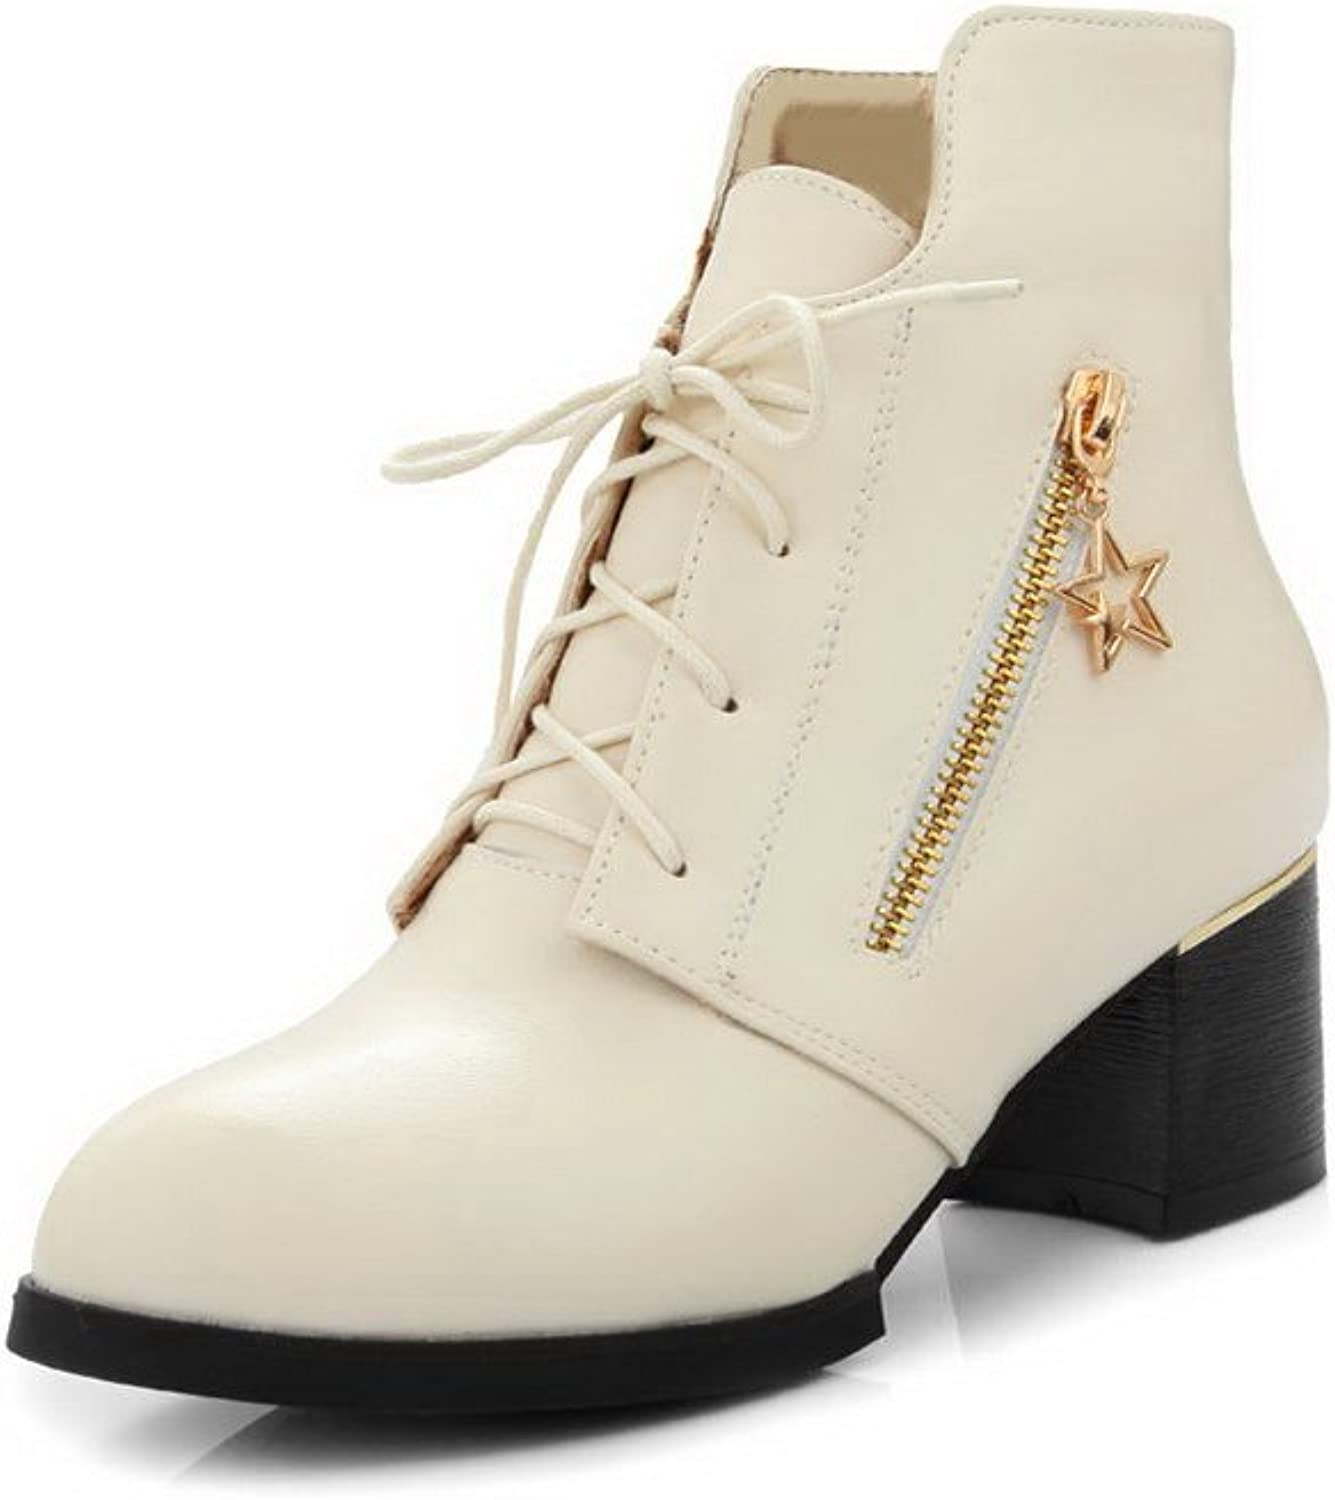 AllhqFashion Women's Lace up Pointed Closed Toe Kitten Heels Pu Low Top Boots